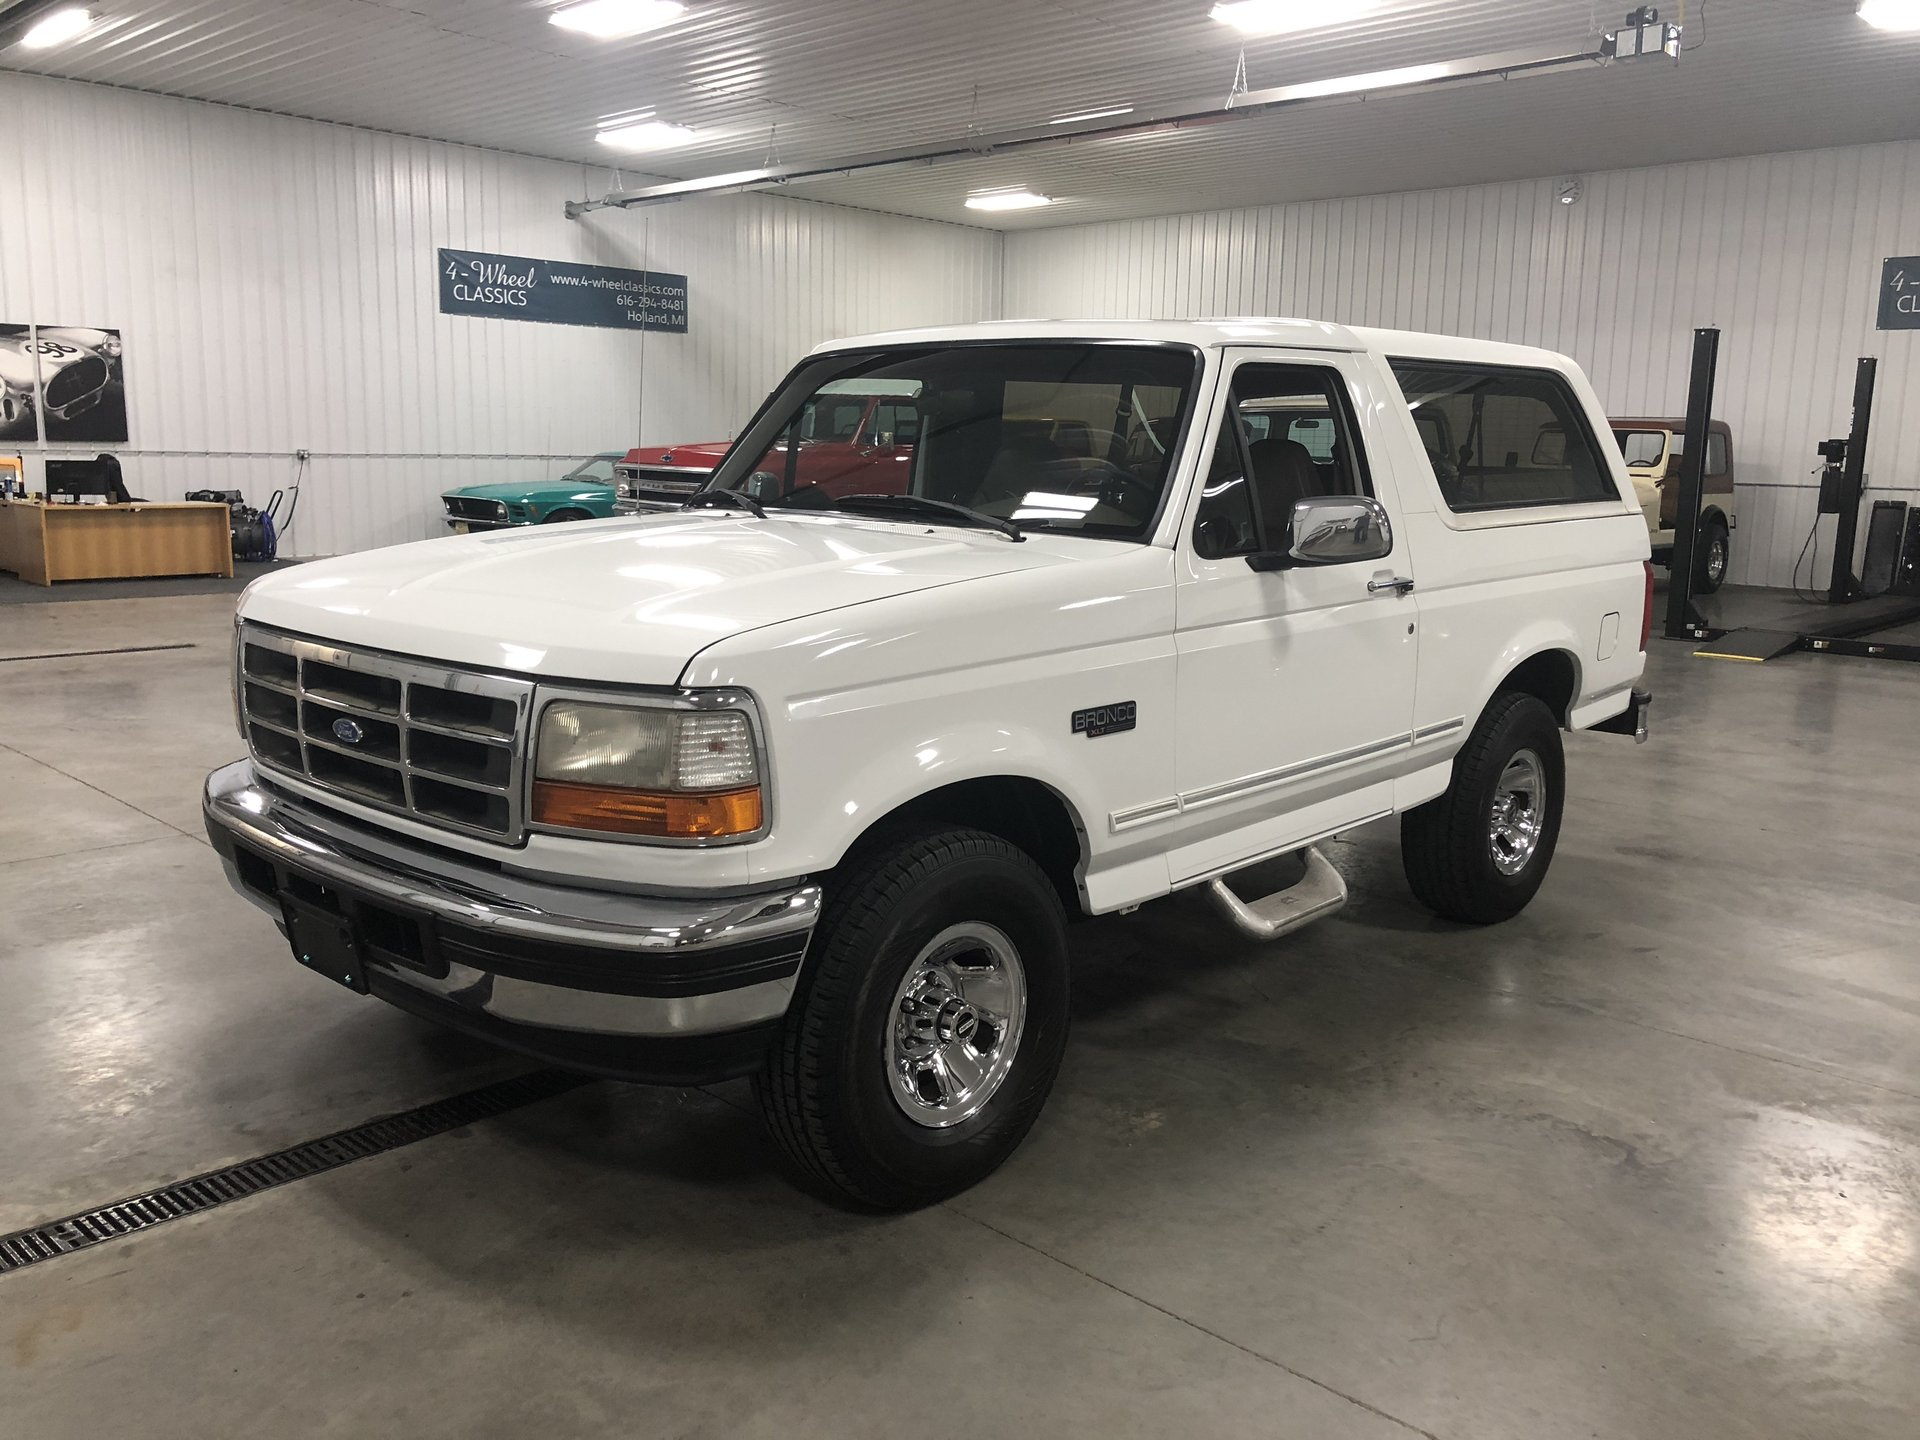 125558fbb51d8 hd 1996 ford bronco